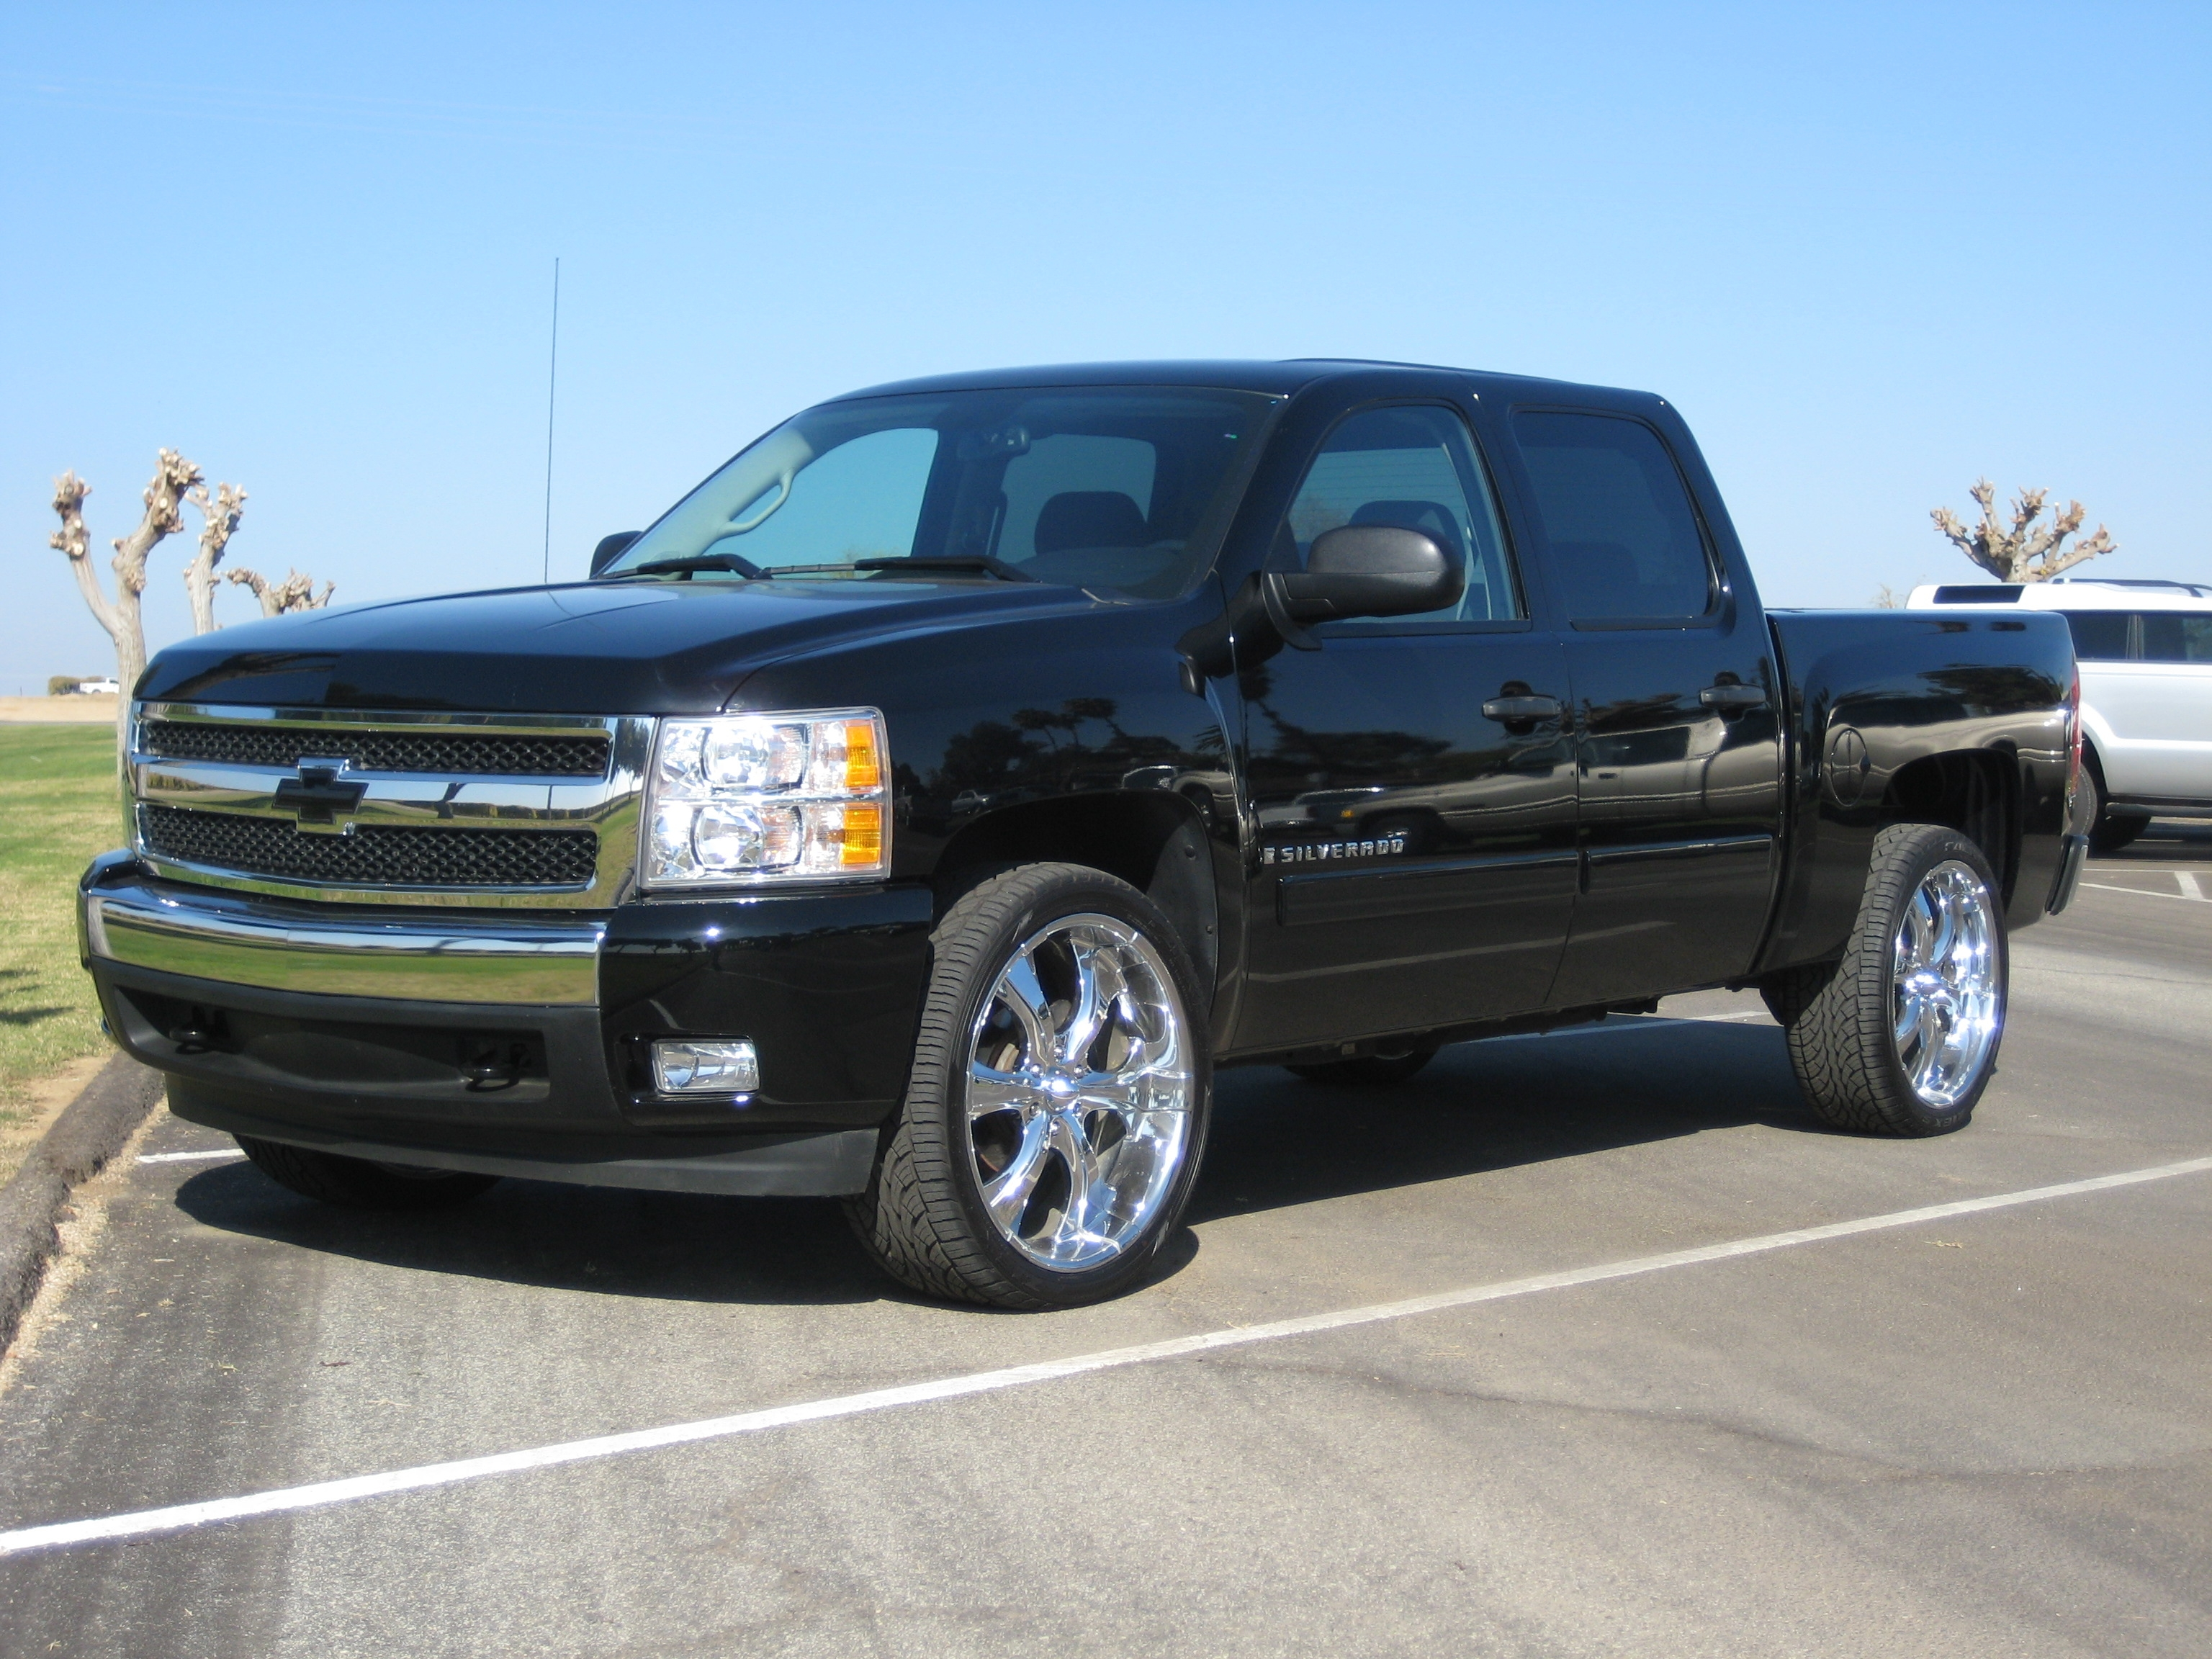 bigwood49 2008 chevrolet silverado 1500 crew cab specs photos modification info at cardomain. Black Bedroom Furniture Sets. Home Design Ideas